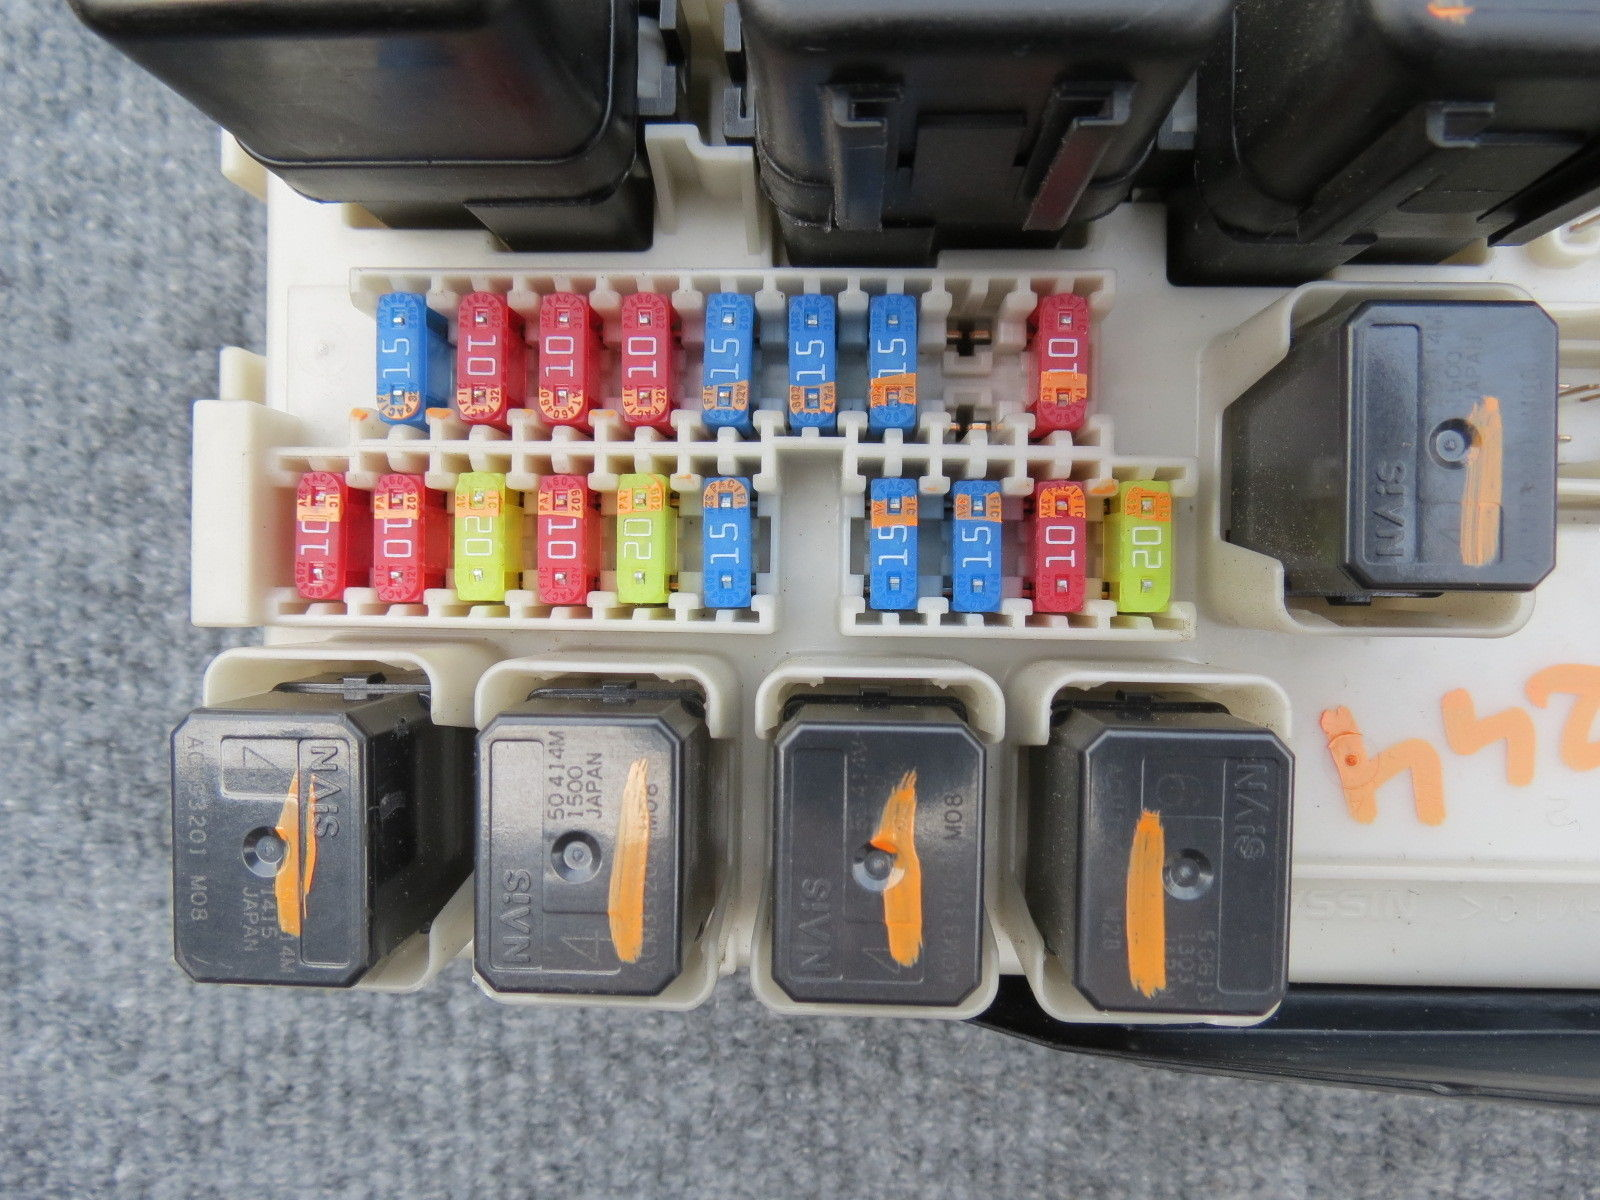 05 07 Nissan 350z Oem Power Distribution And 50 Similar Items 2007 Fuse Box Ipdm Module 284b7cd016